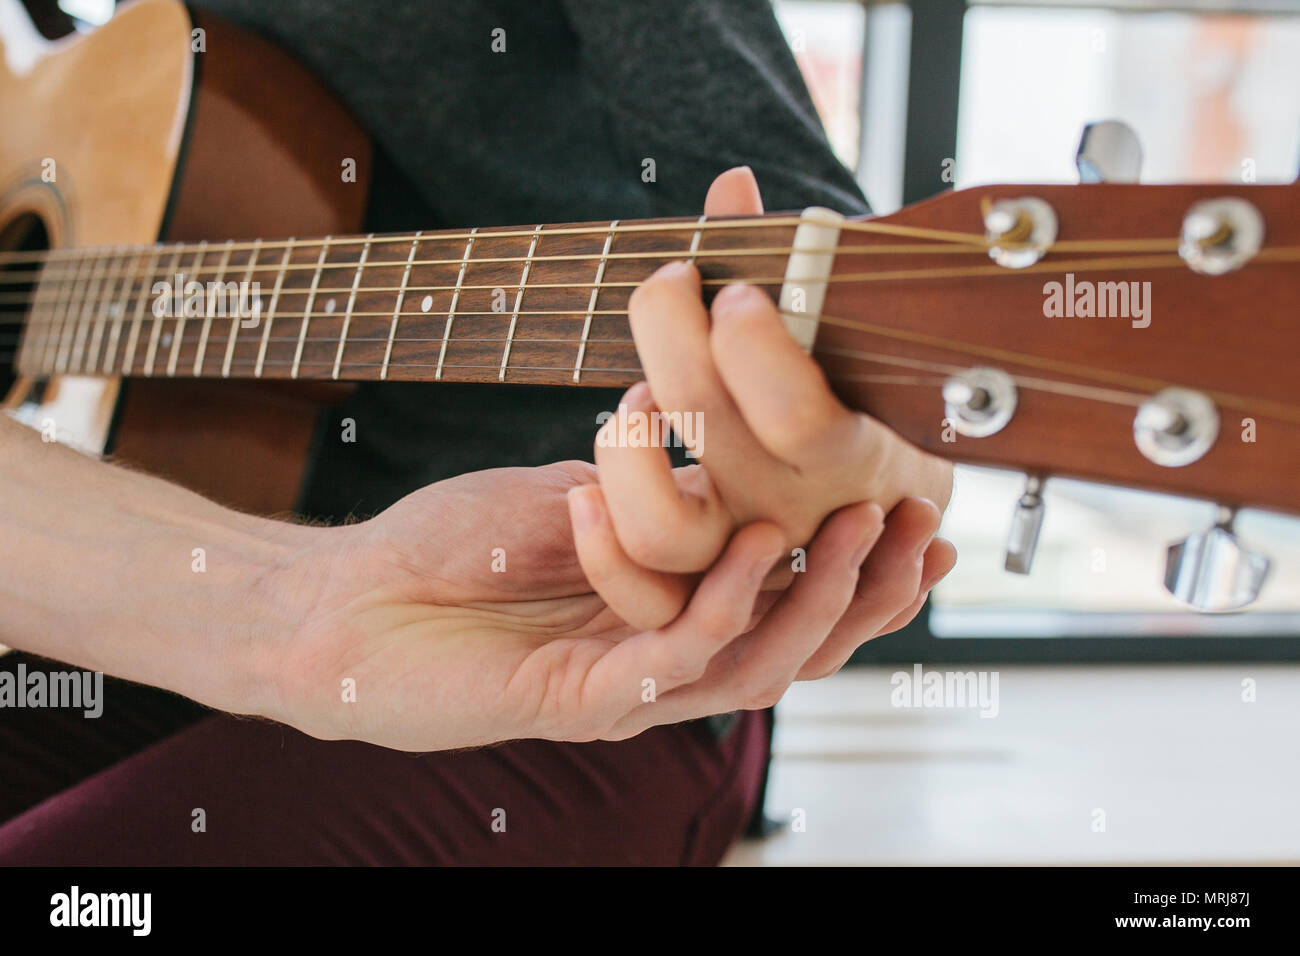 Learning to play the guitar. Music education and extracurricular lessons - Stock Image